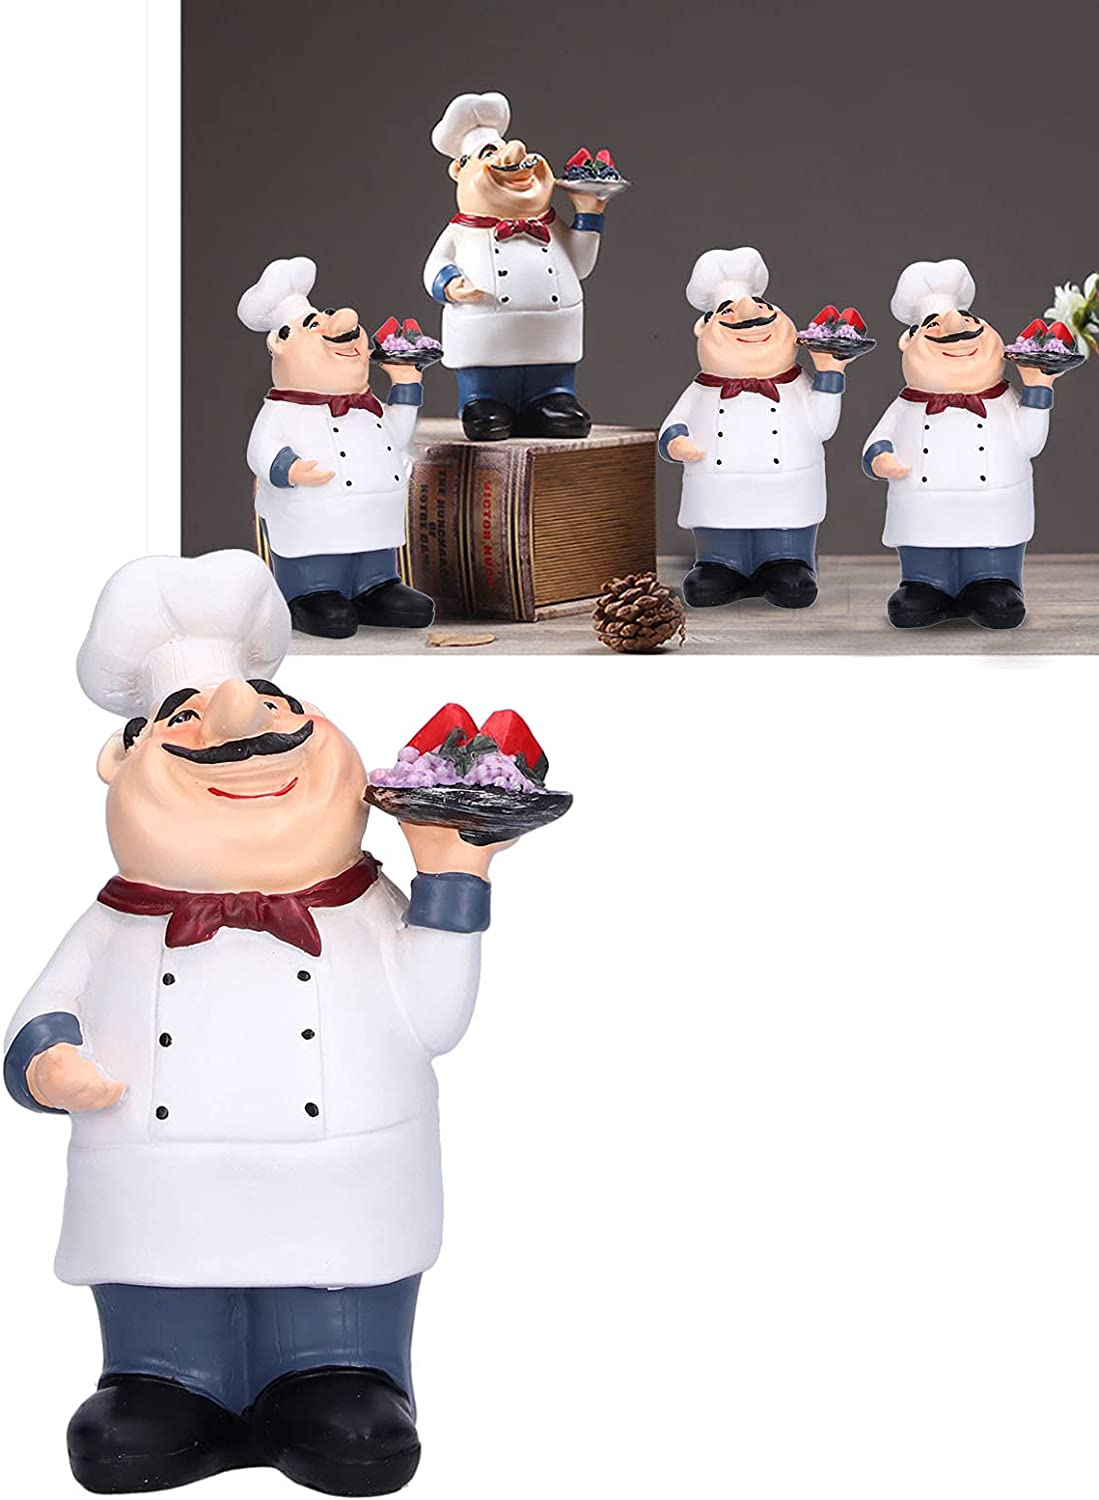 Chef Decor Synthetic excellence Resin famous Restaurant for Figurine Kit